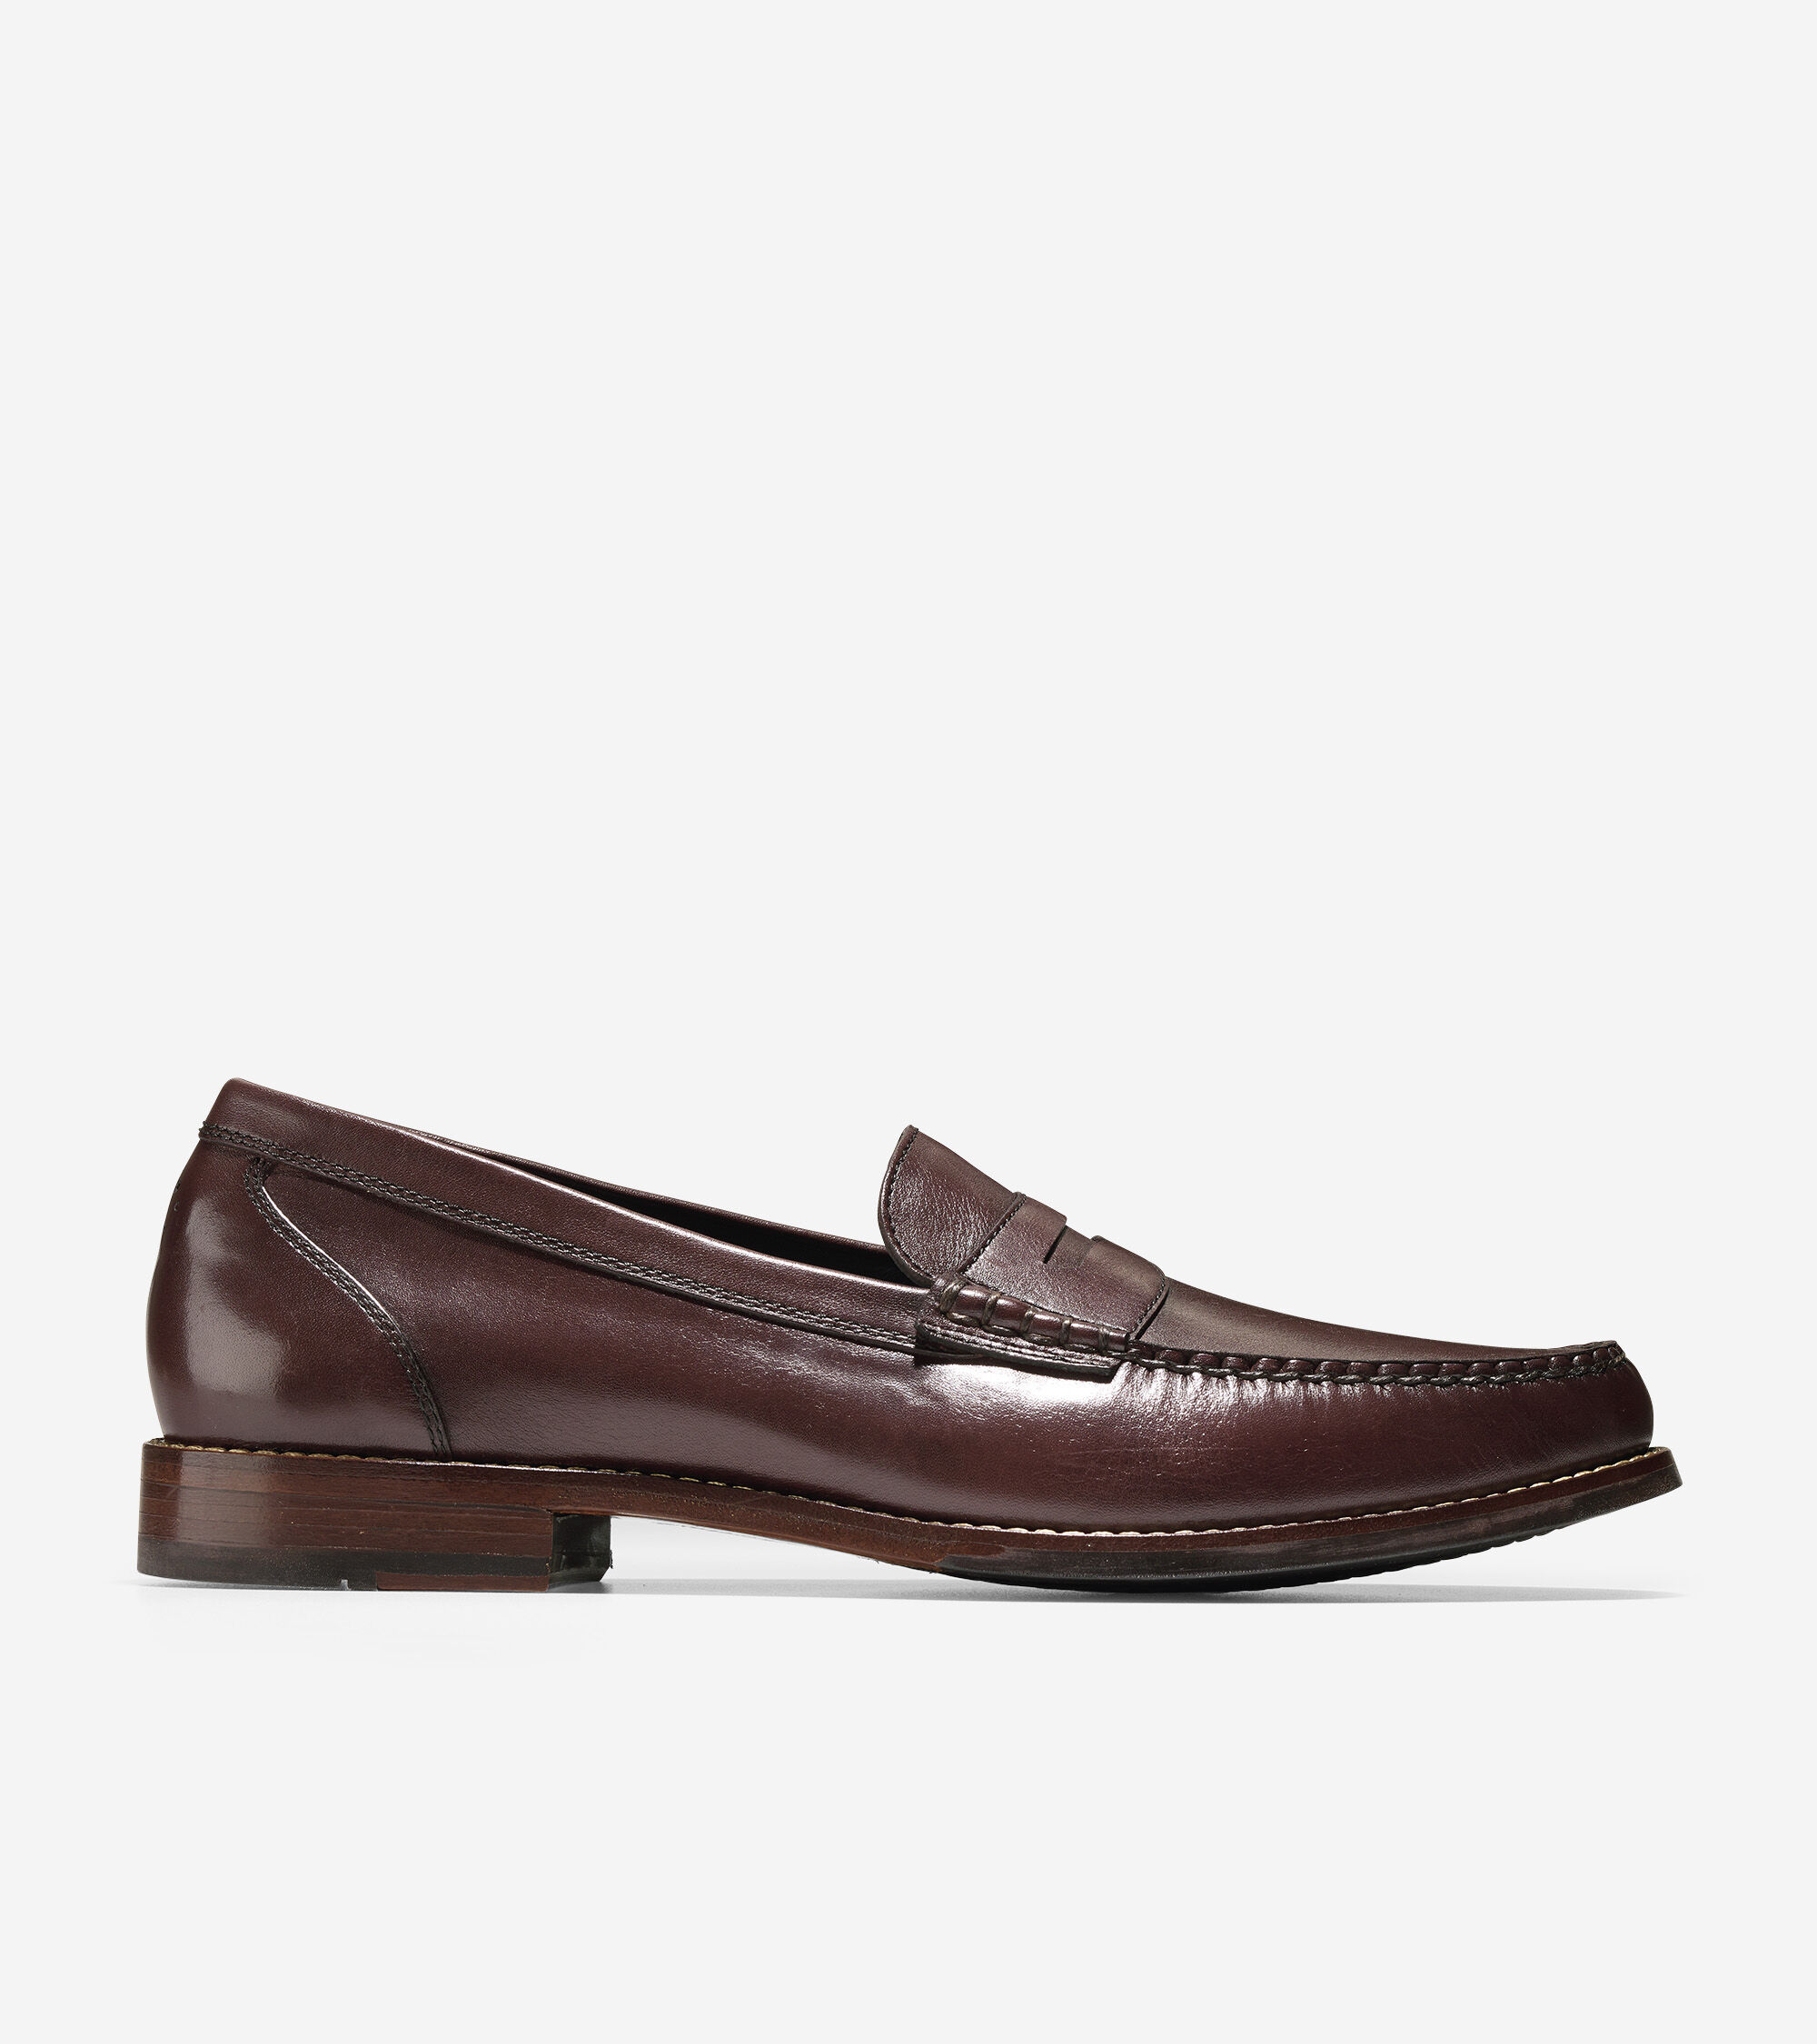 f58bf82d4fc Men s Pinch Grand Classic Penny Loafers in Mahogany